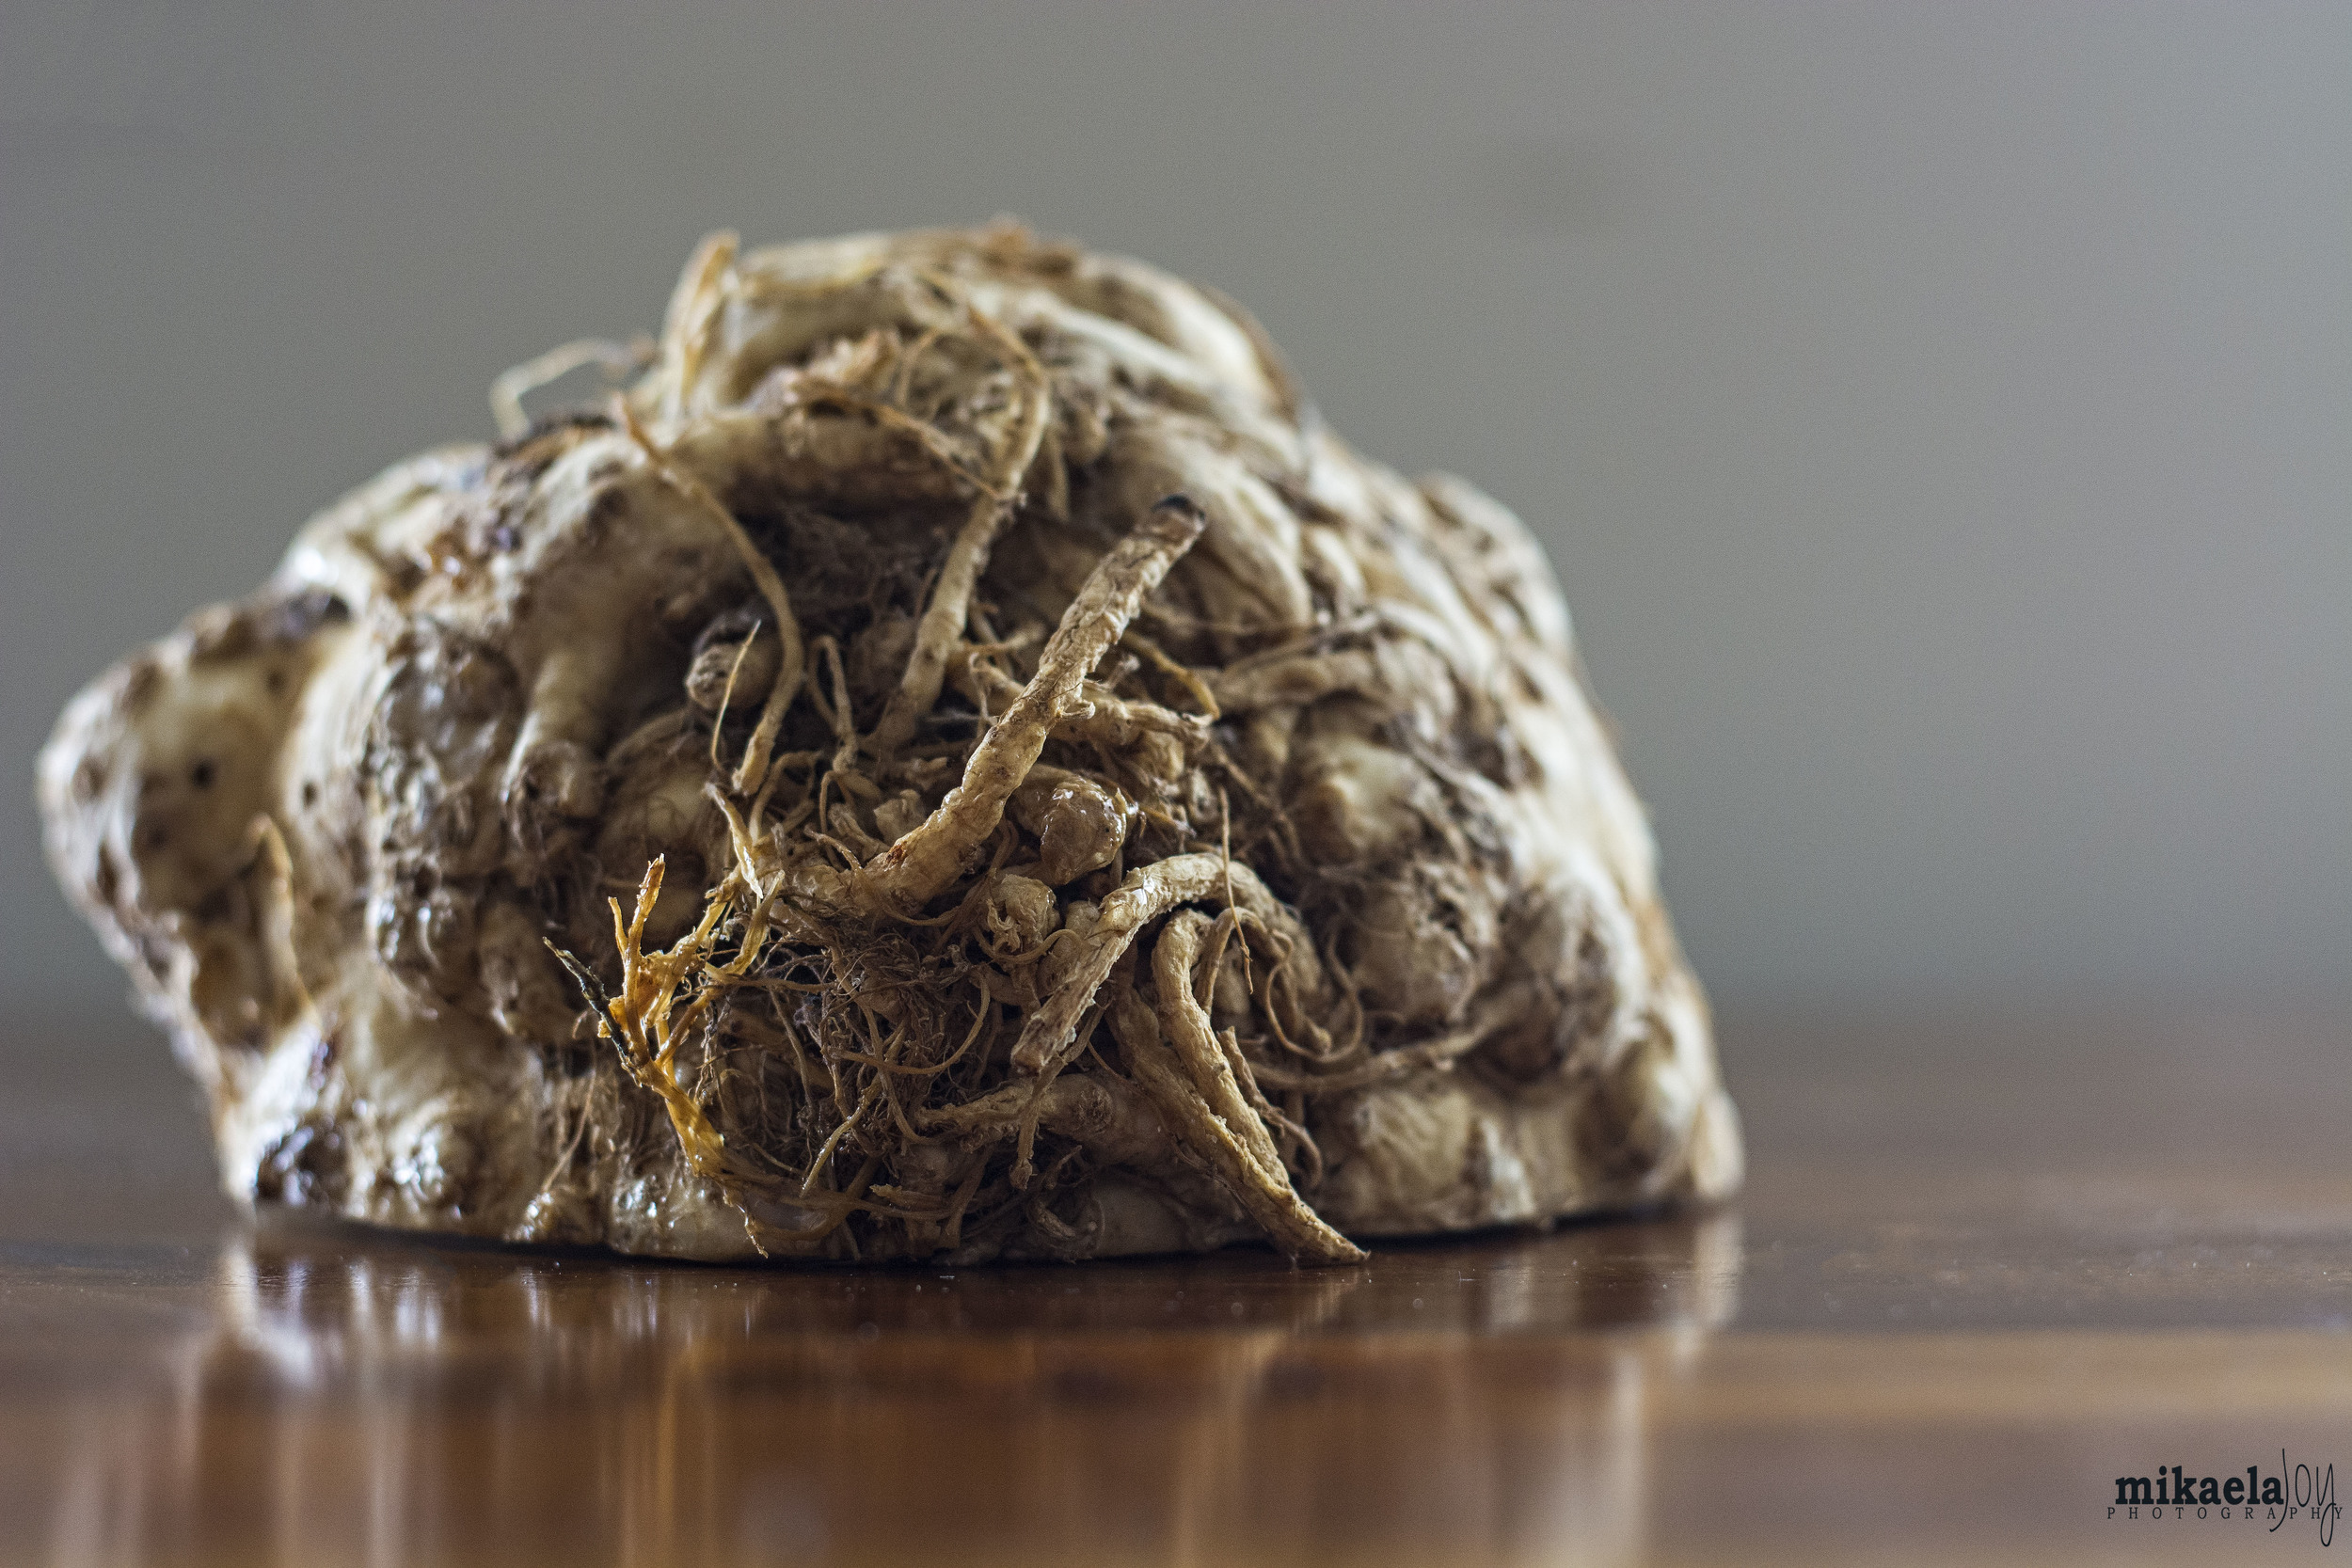 This is a vegetable: celery root, not one of the monsters under your bed.